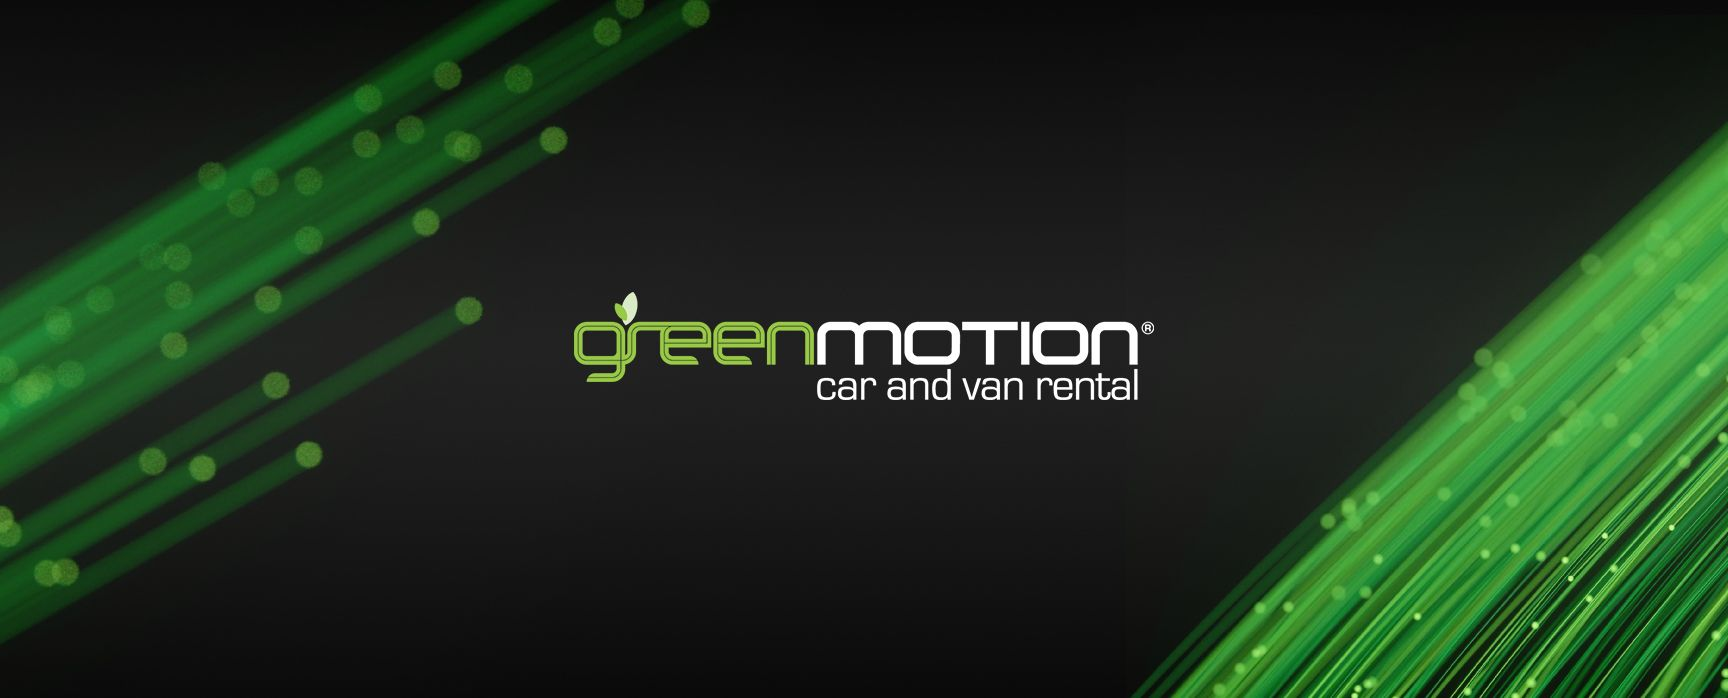 Green Motion logo and light trails